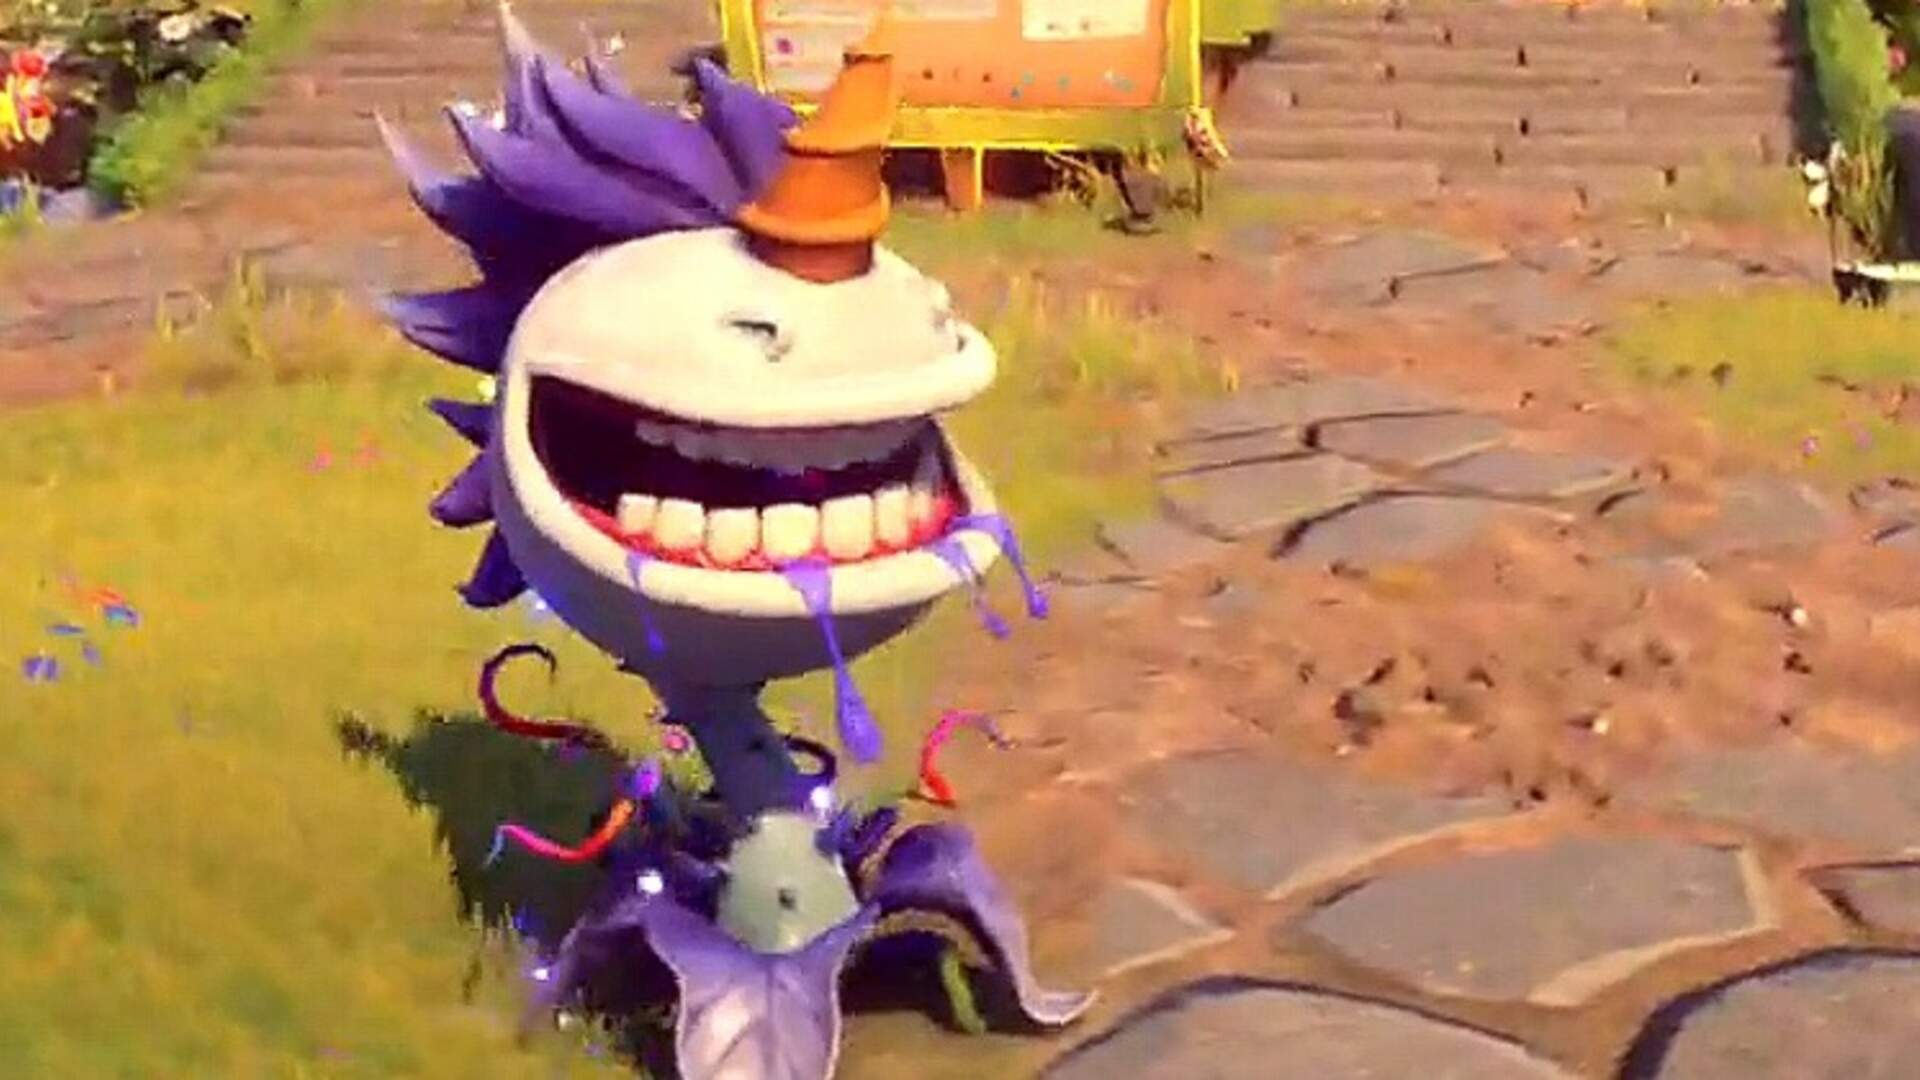 Plants vs Zombies Garden Warfare 2: How to Unlock the Unicorn Chomper